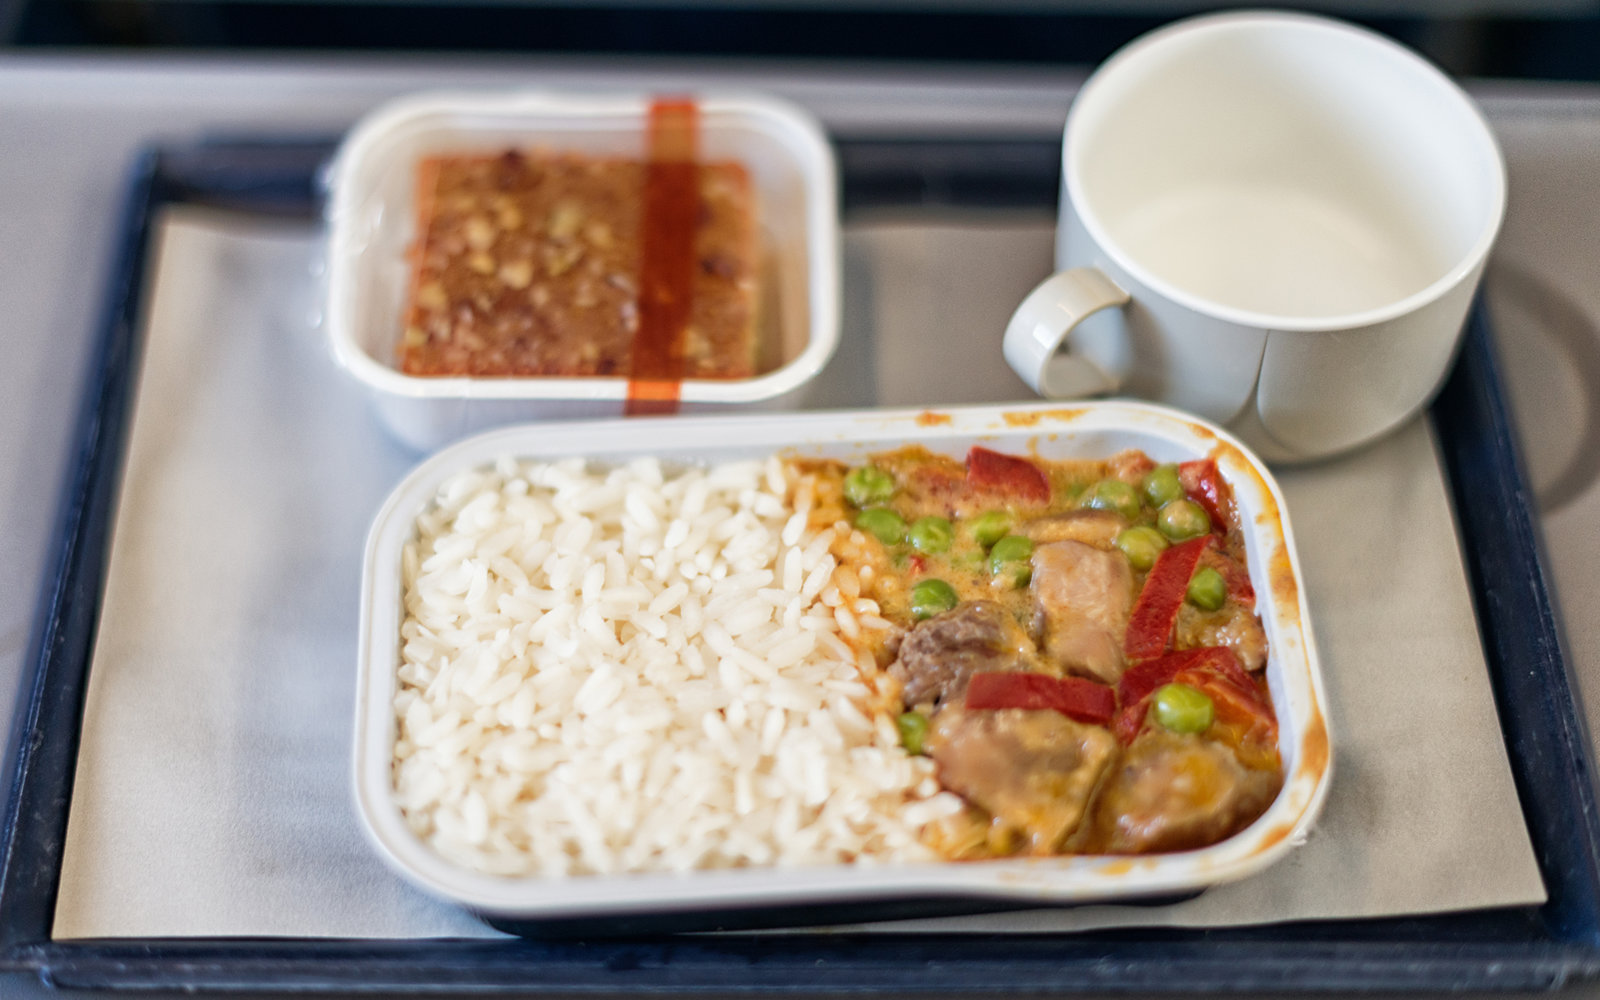 Why airplane food taste so bad